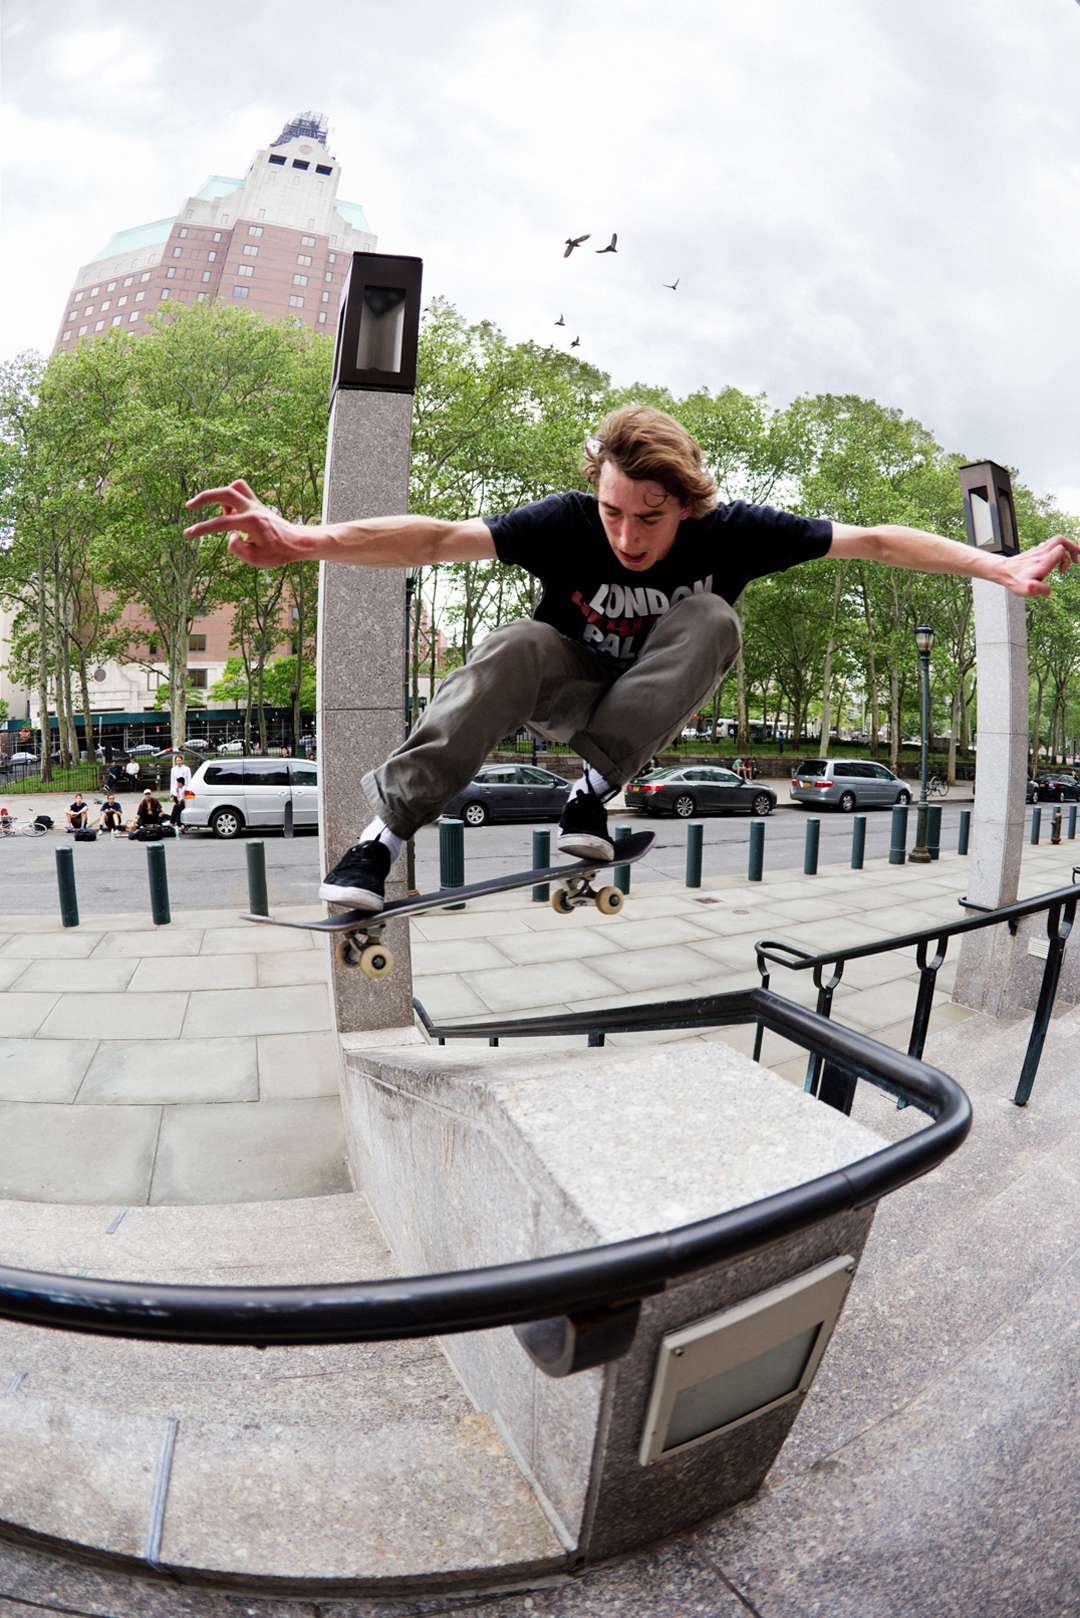 And Rory Milanes gets down with the backside 180